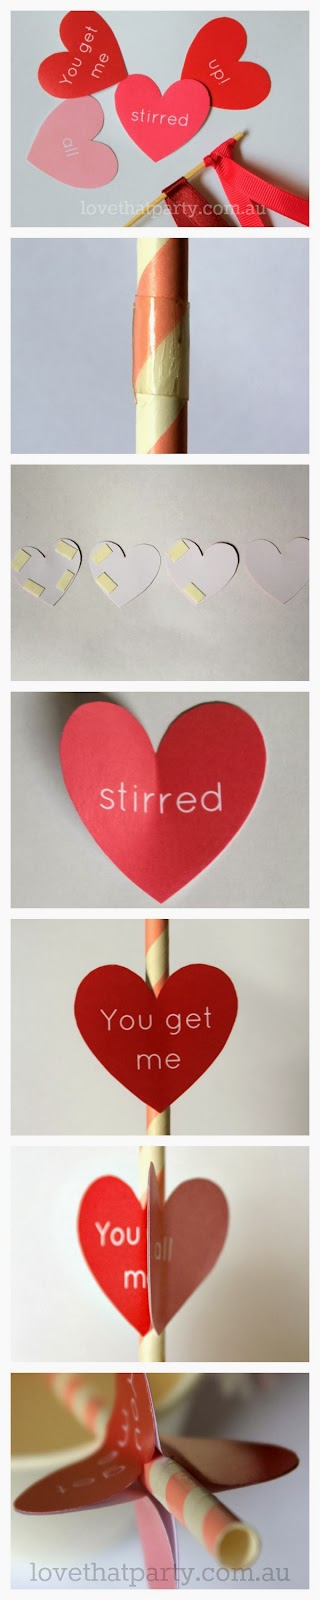 "Free Printable Valentine's Day Drink Stirrer: ""You get me all stirred up!"" How to tutorial by Love That Party. www.lovethatparty.com.au"